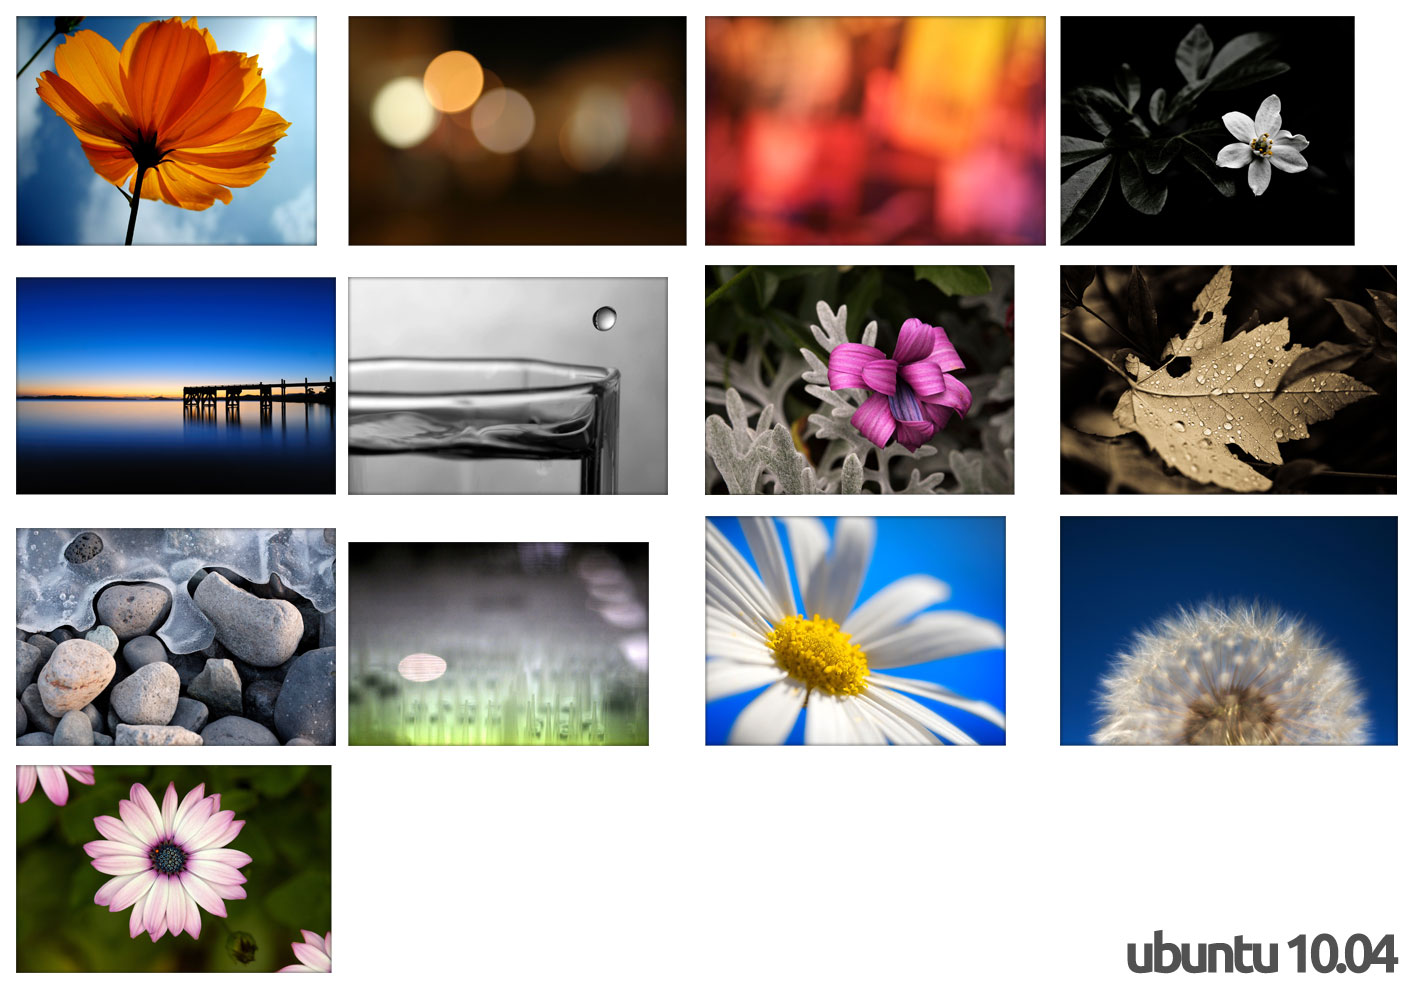 ubuntu 10.04 Wallpapers